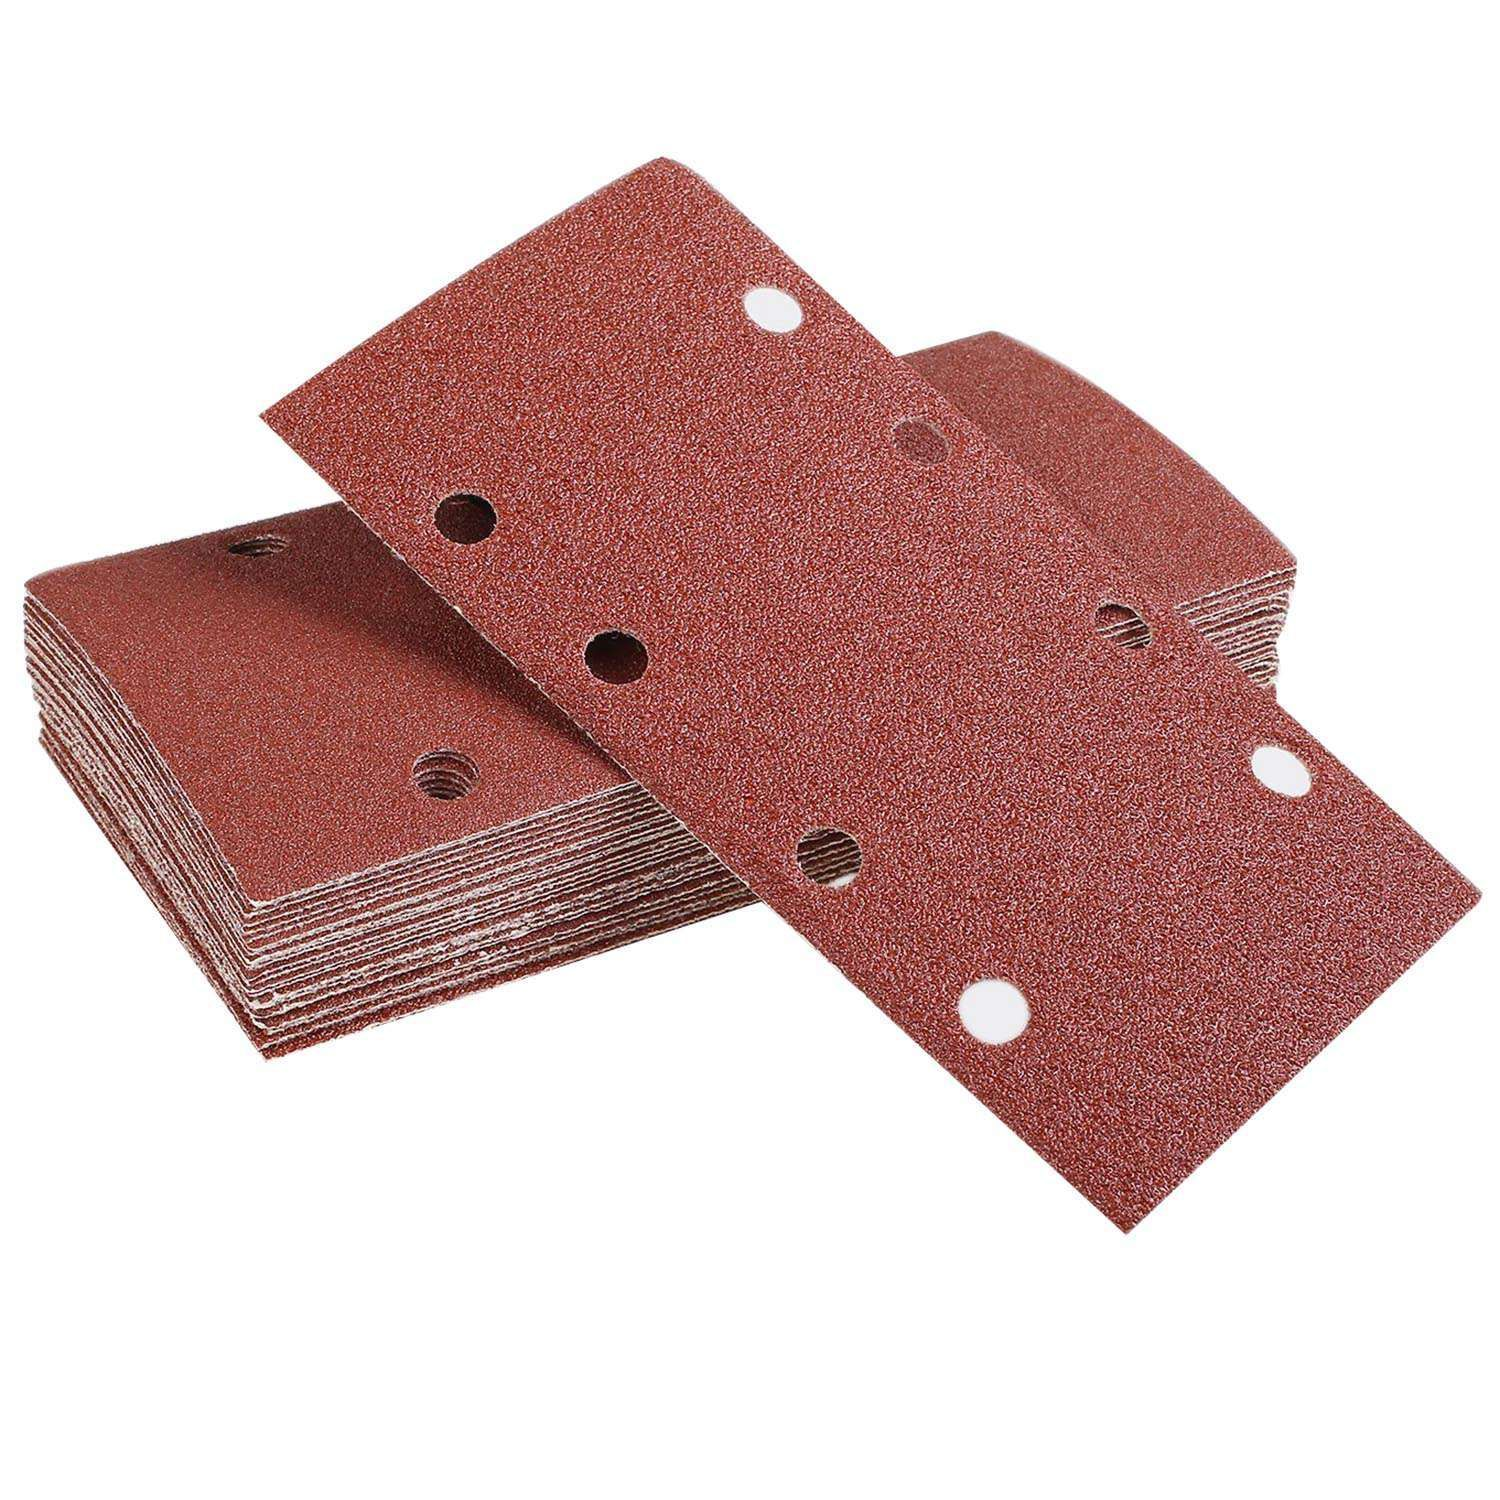 10pcs 80 Particle Size Square Sandpaper 93 X 186 Mm Aluminum Oxide 80 Holes Grit Paper Sheets Sandpaper Grinding Polishing Tool